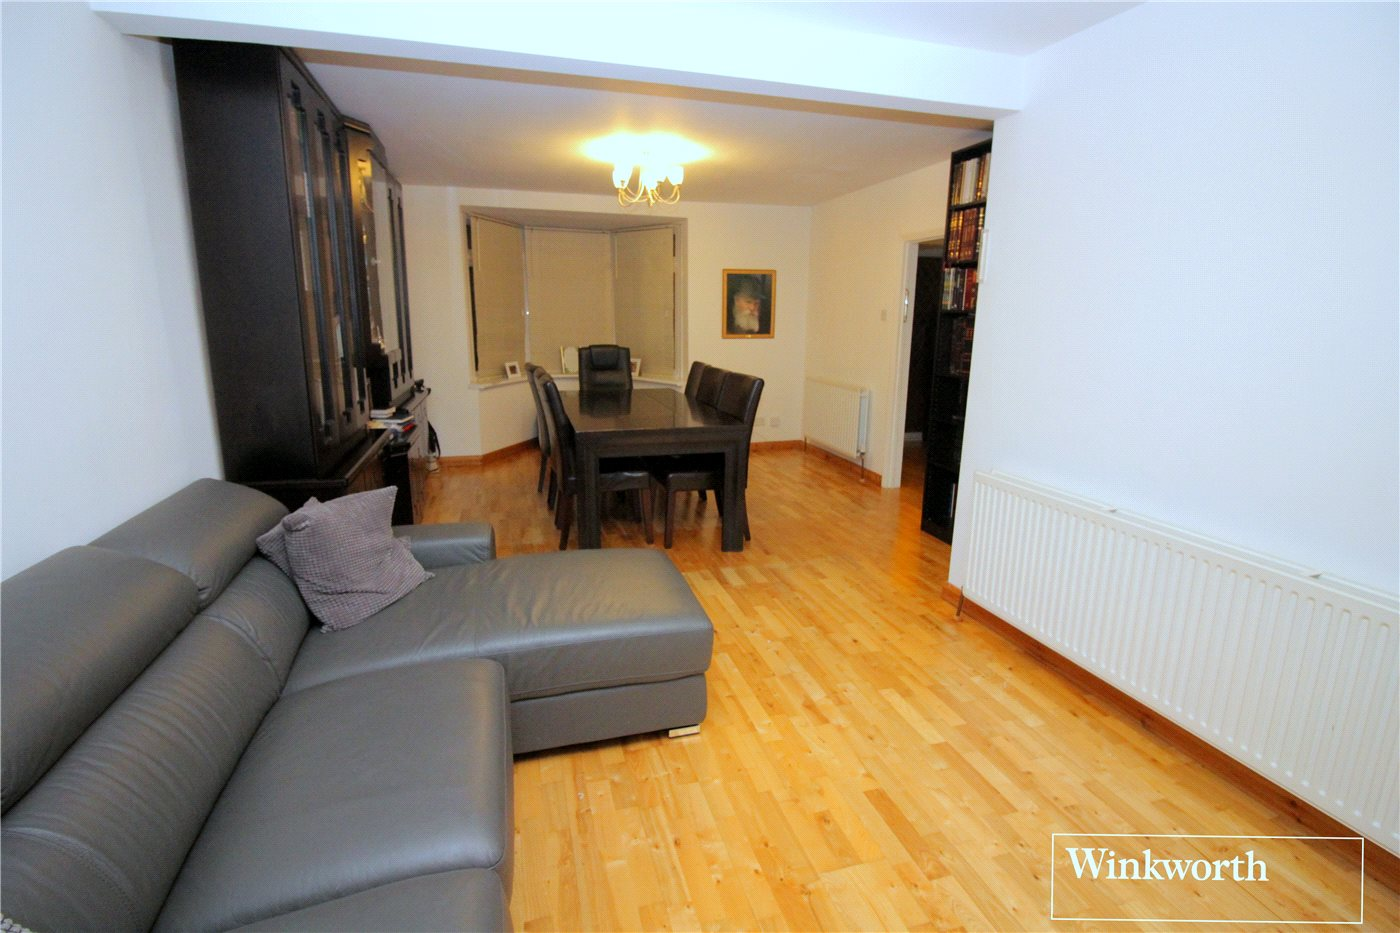 3 Bedrooms Terraced House for sale in Linton Avenue, Borehamwood, Hertfordshire, WD6